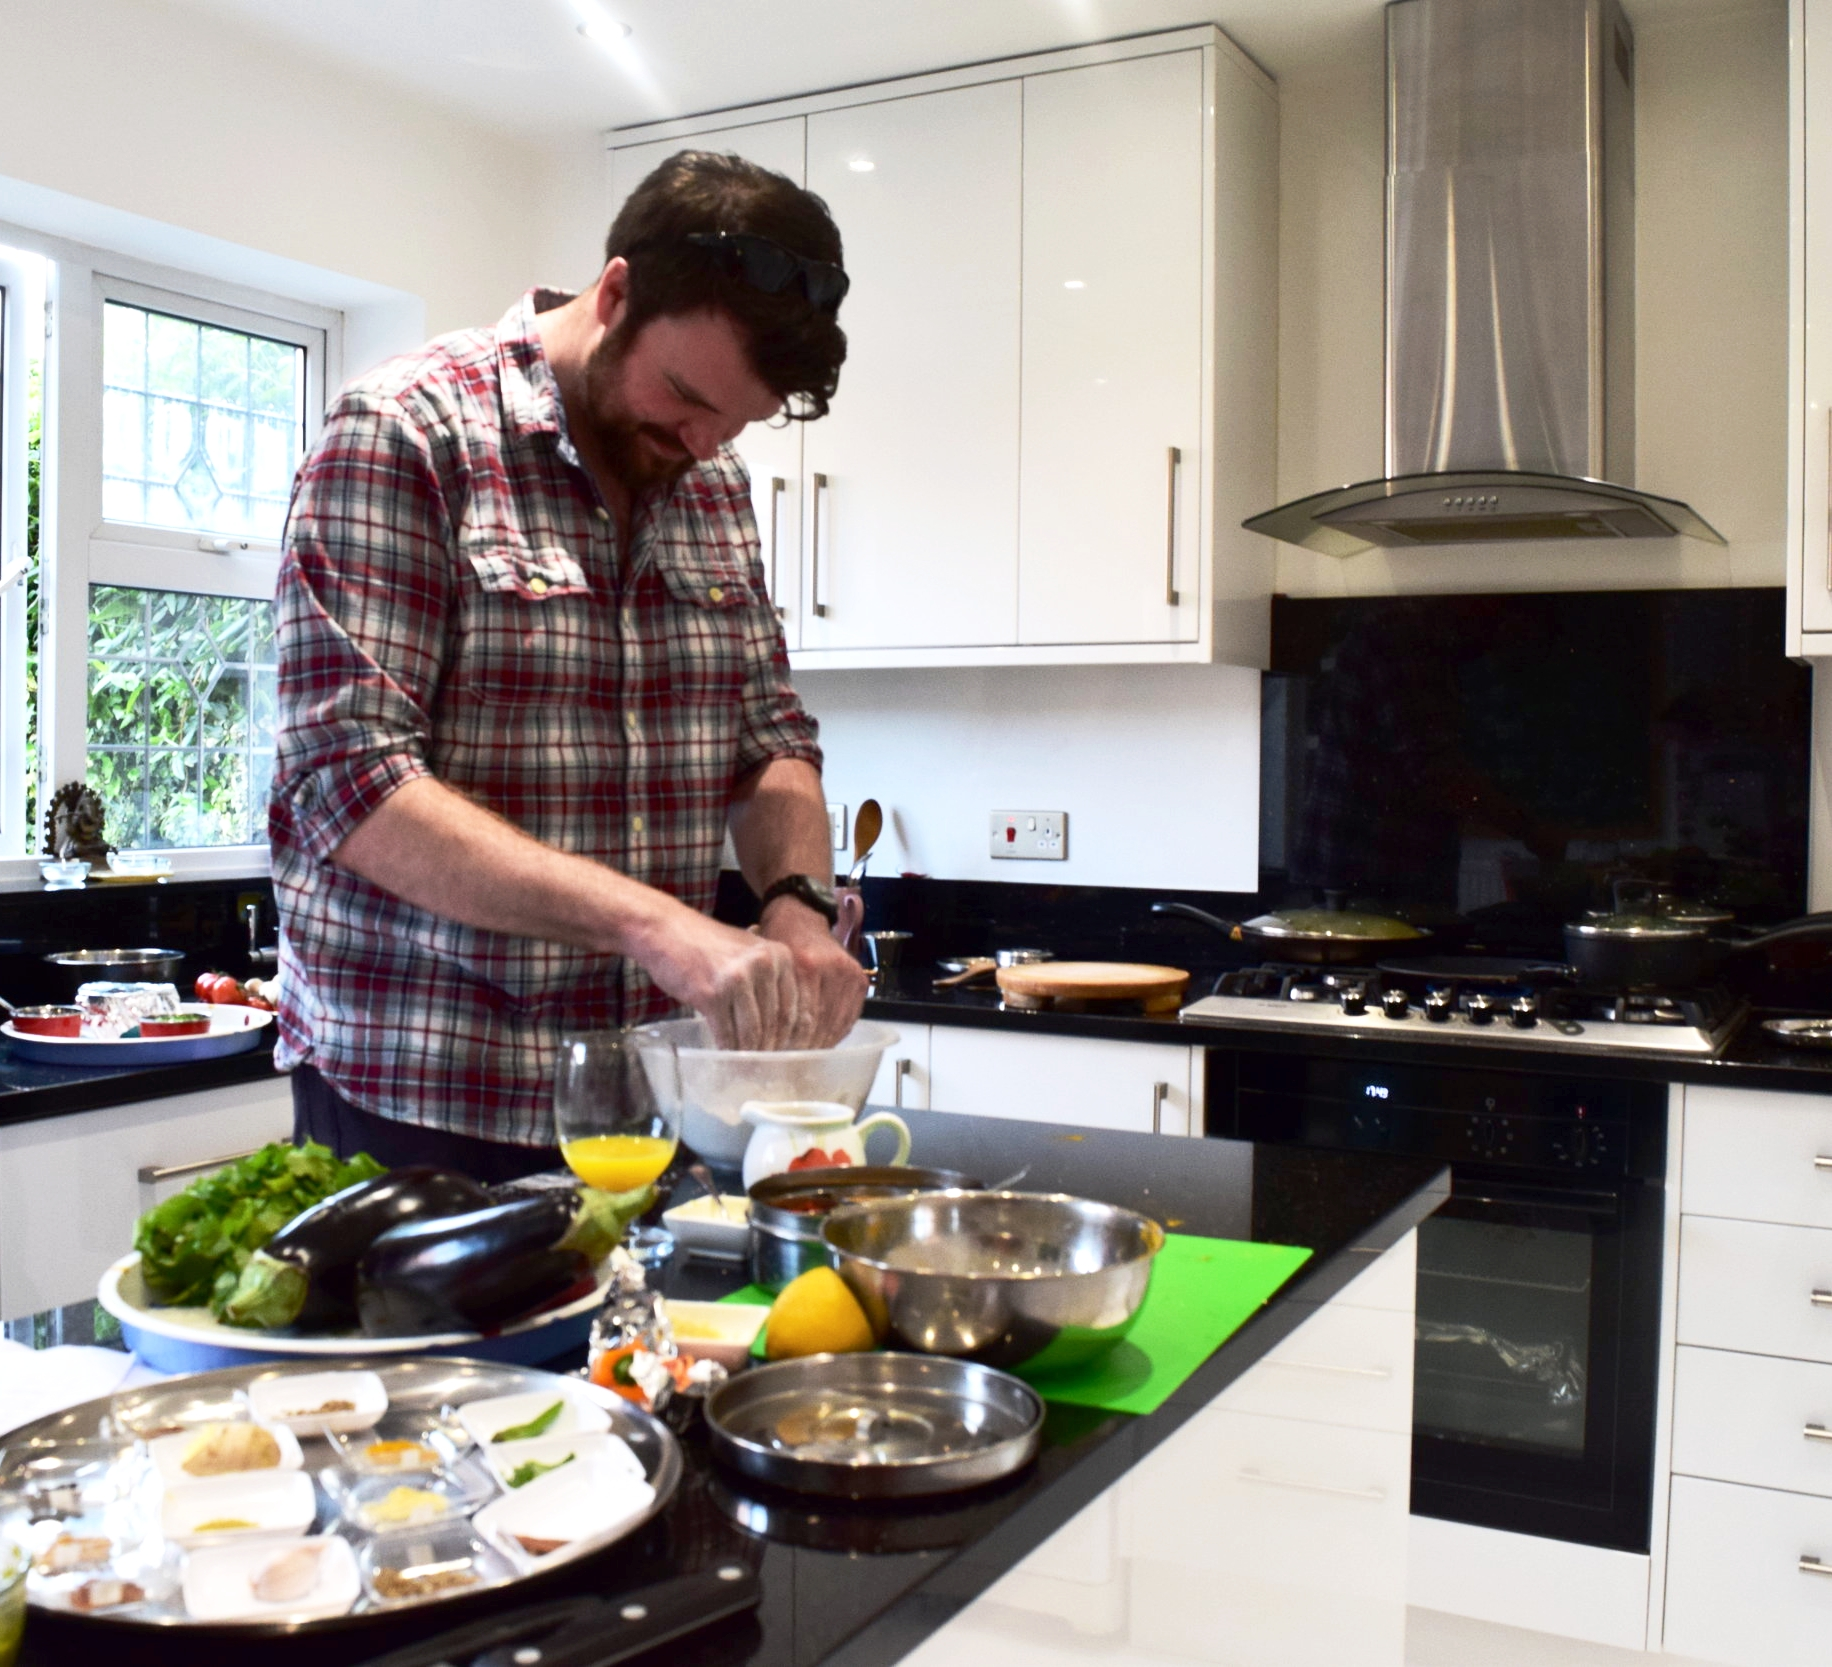 Masterchef 2016 finalist Stuart Archer - Lots of tasty Indian home cookery with @MistryChef tonight, great cook! #sofullicantmove